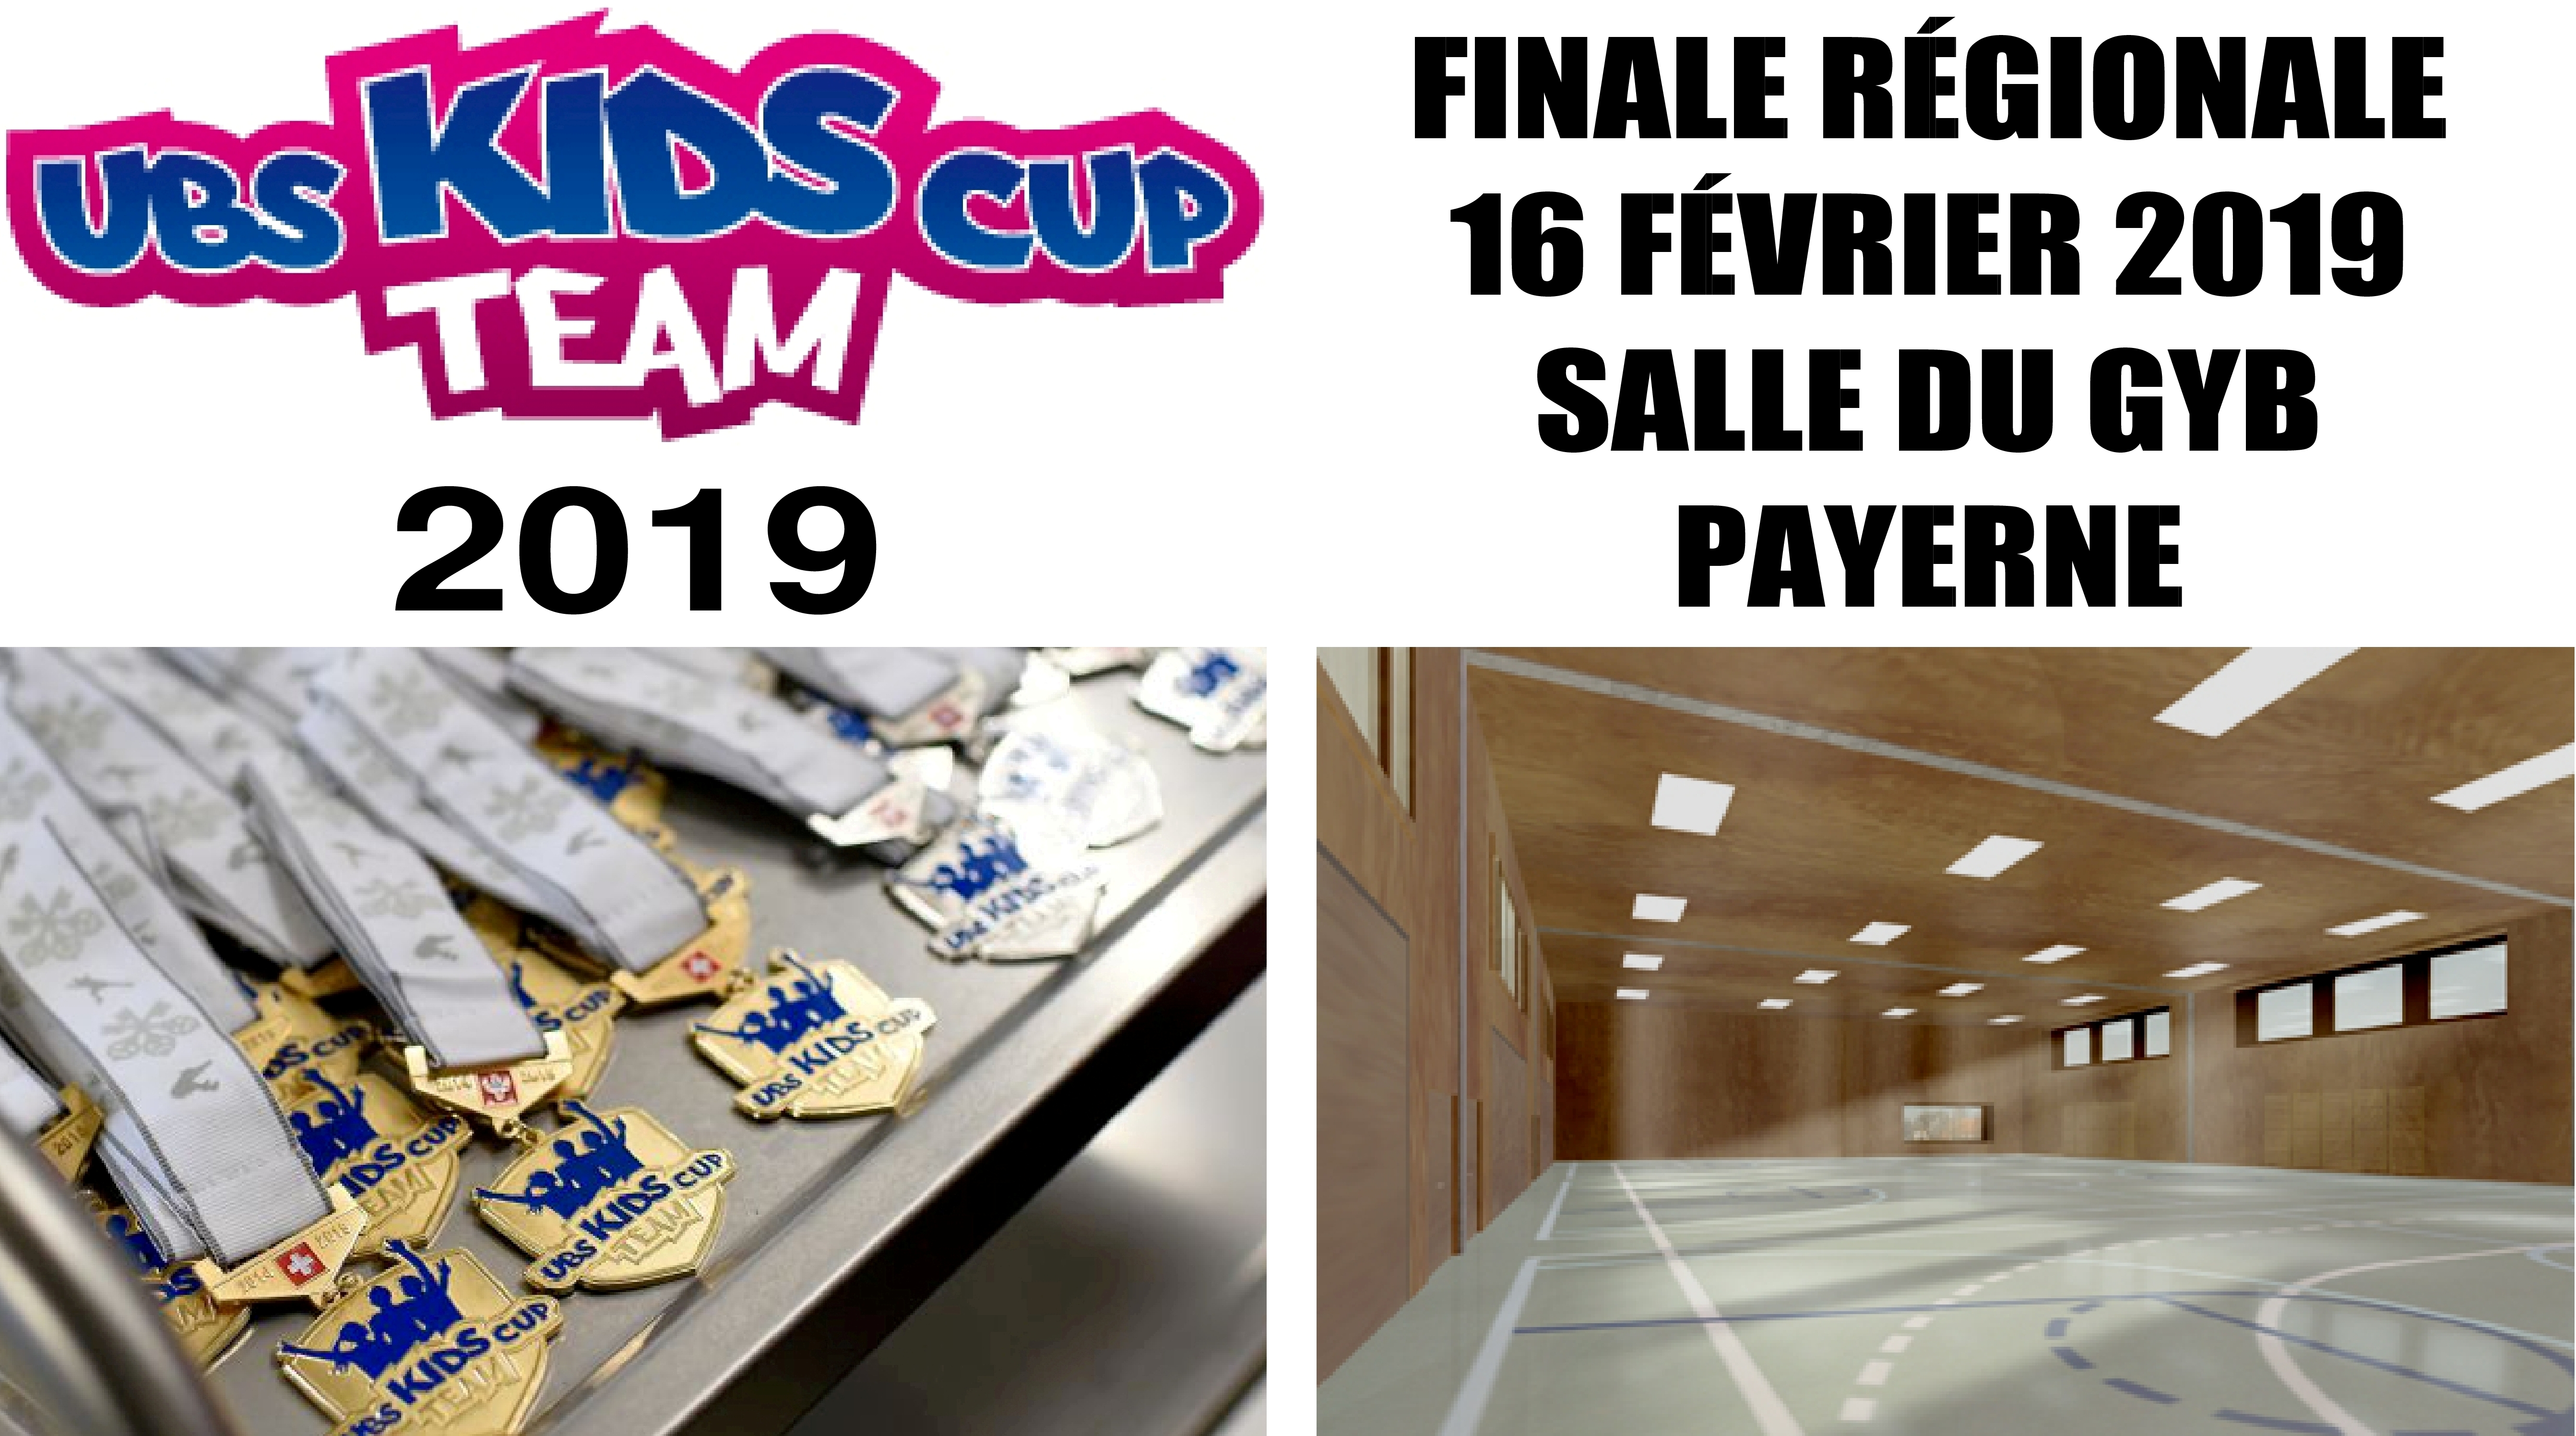 UBS Kids Cup Team à Payerne